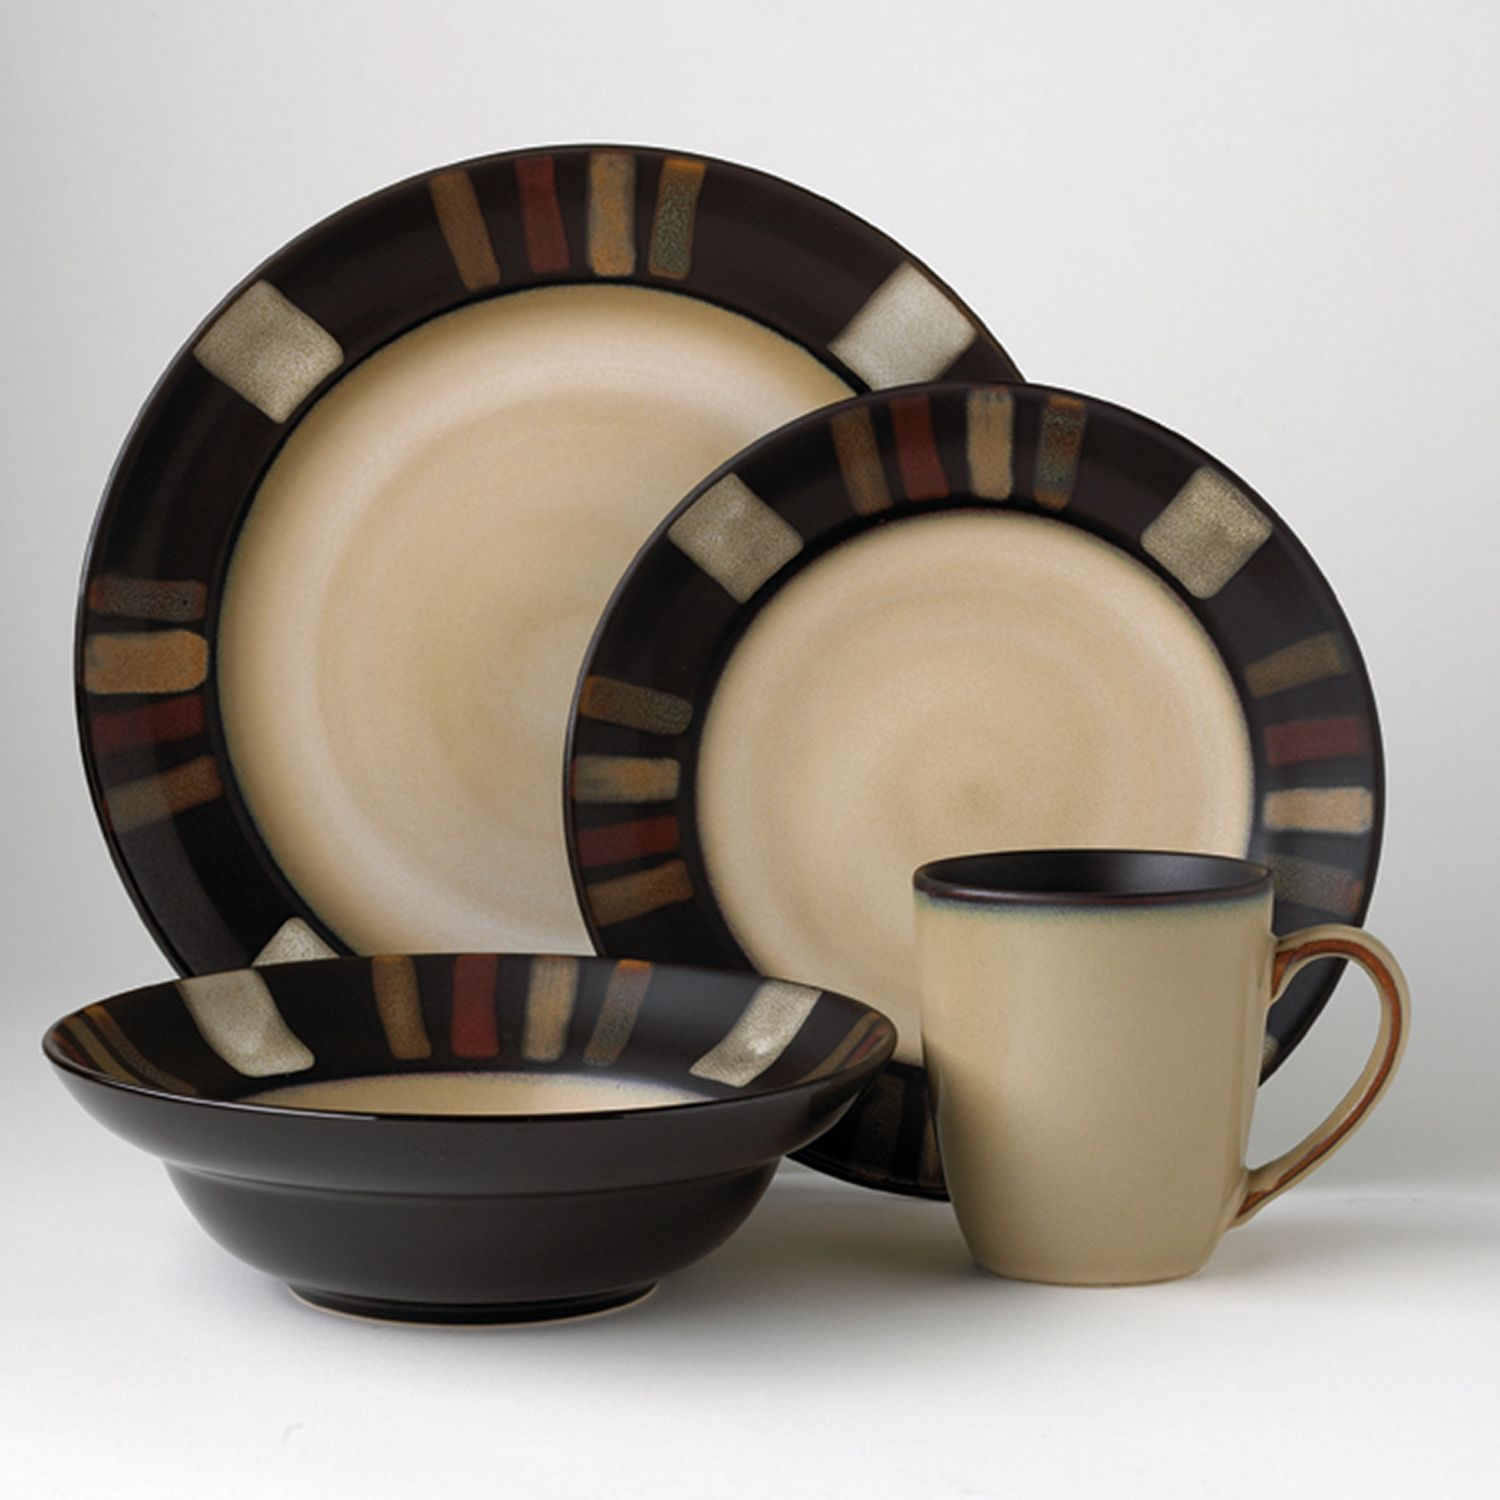 dinnerware set - Stoneware Dishes